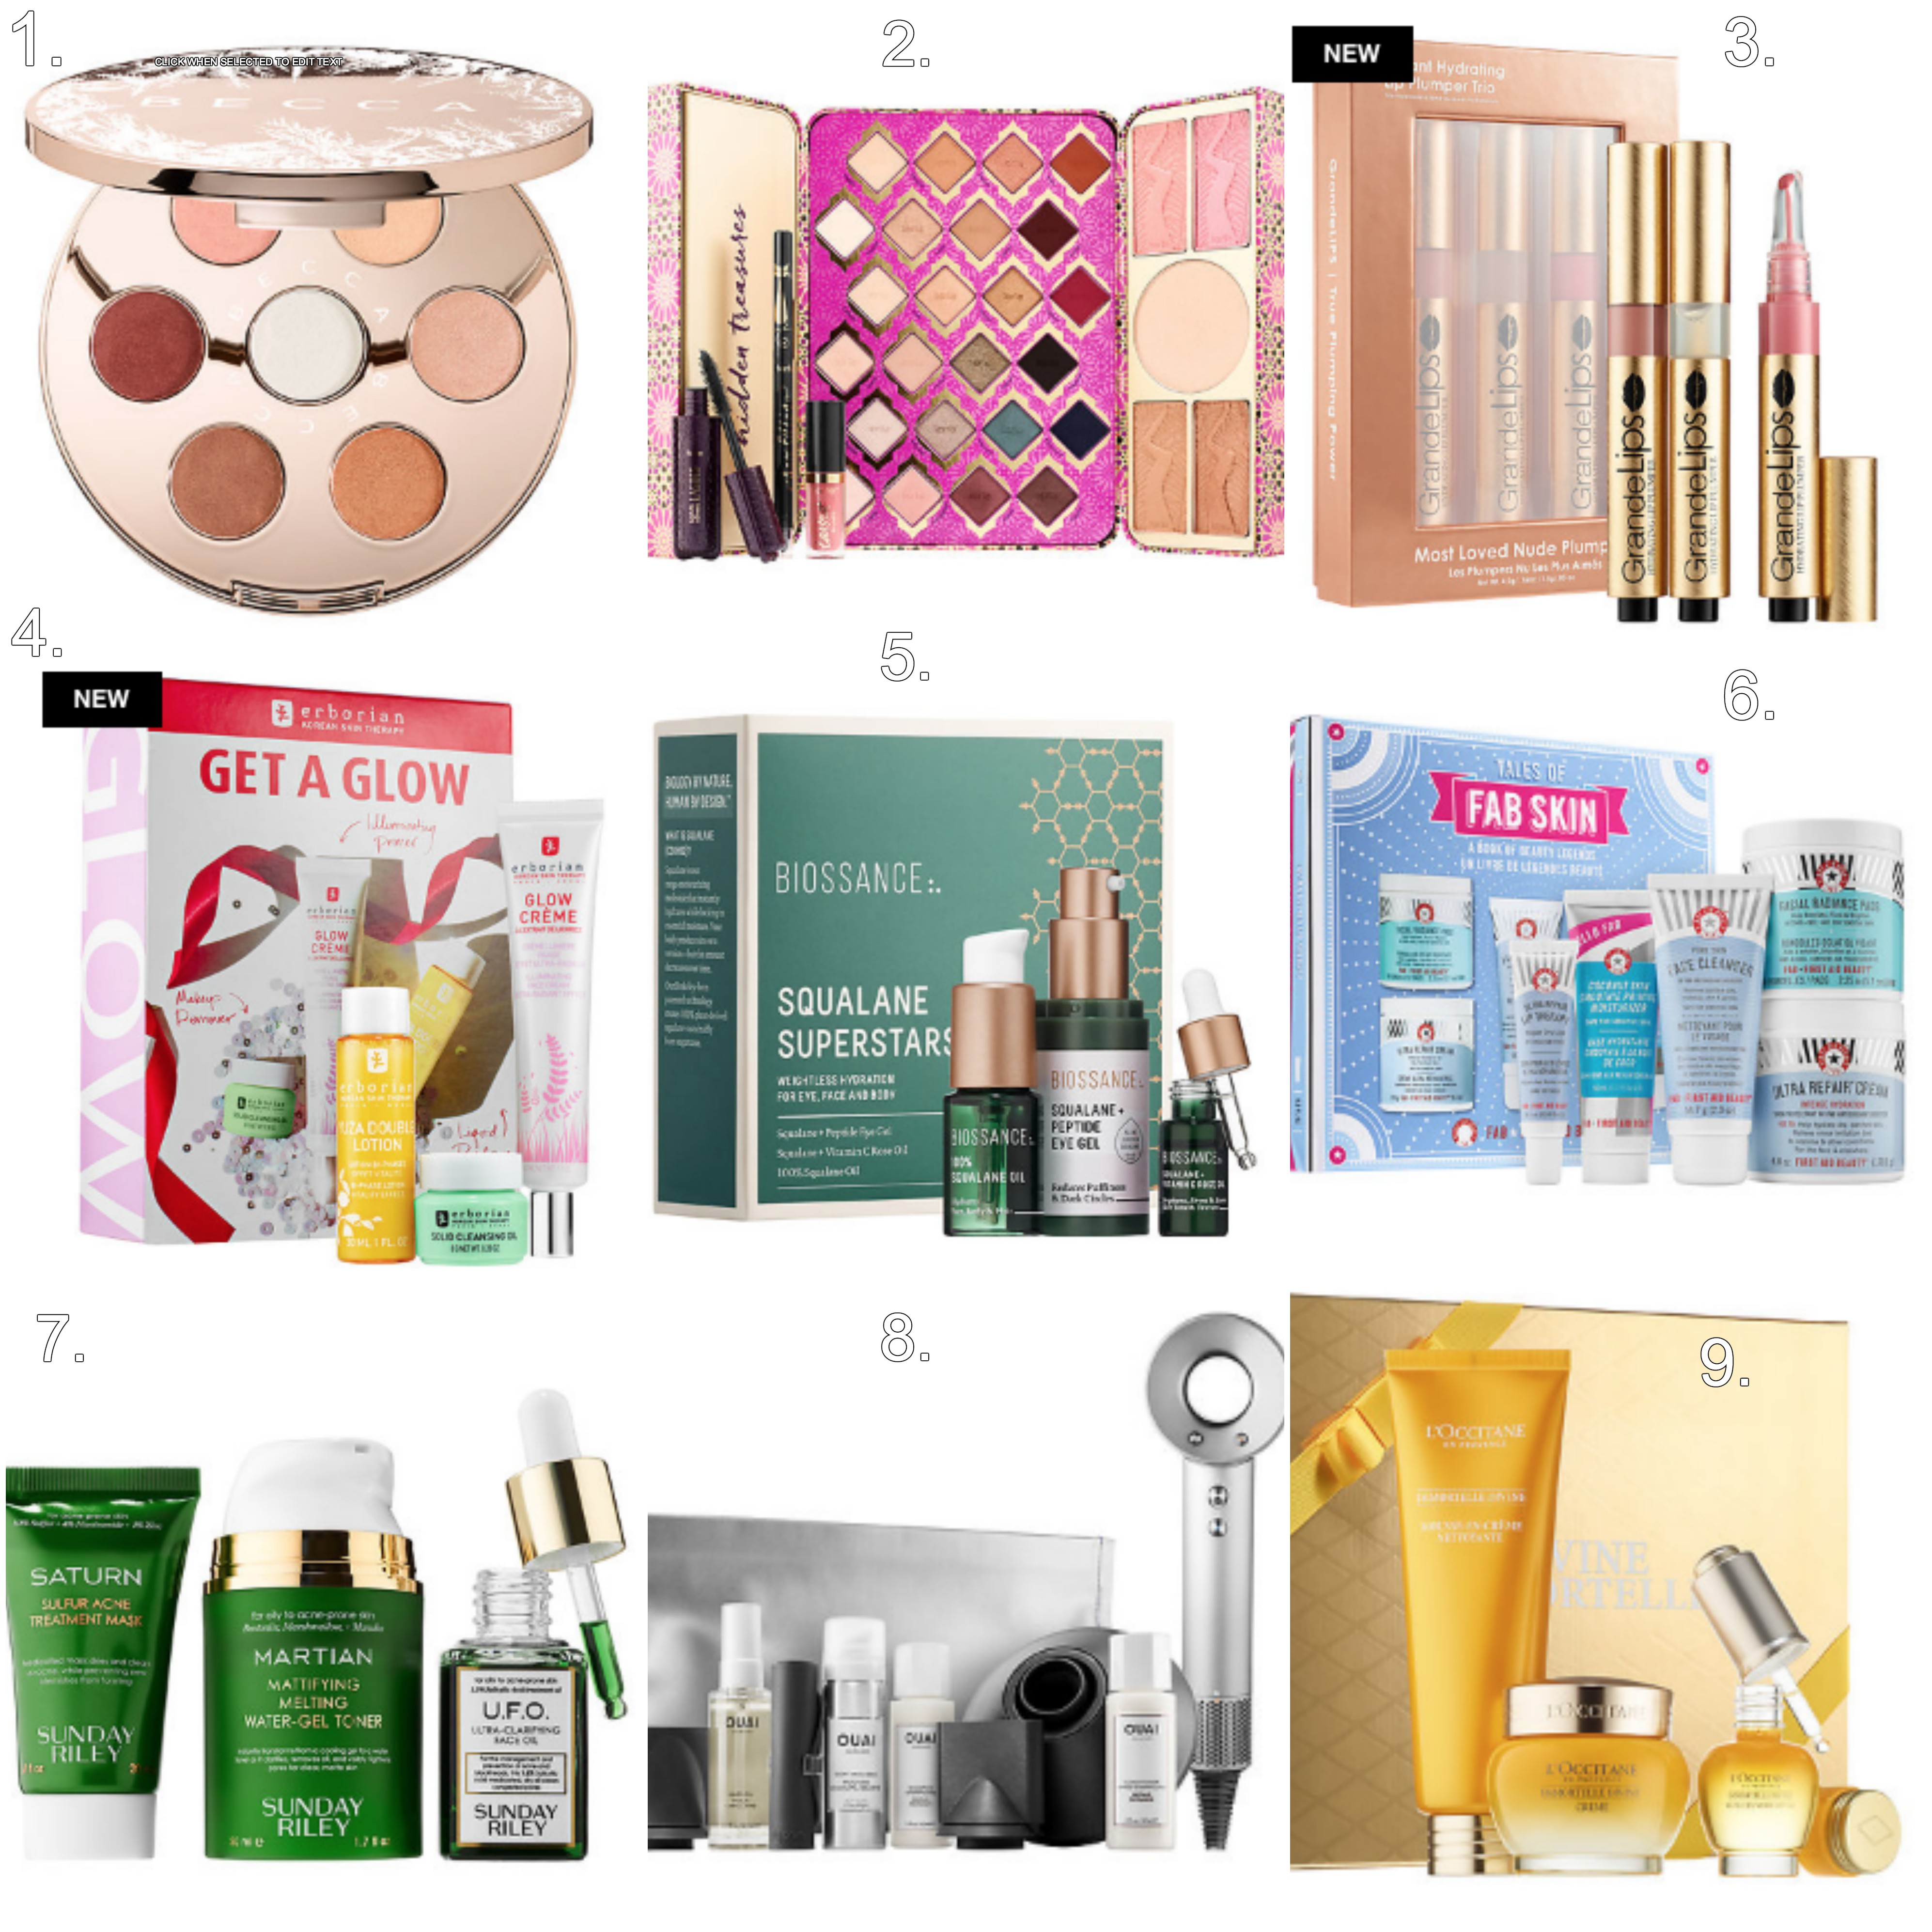 Gifts for the Beauty & Skin Junky - Brokers and Bags